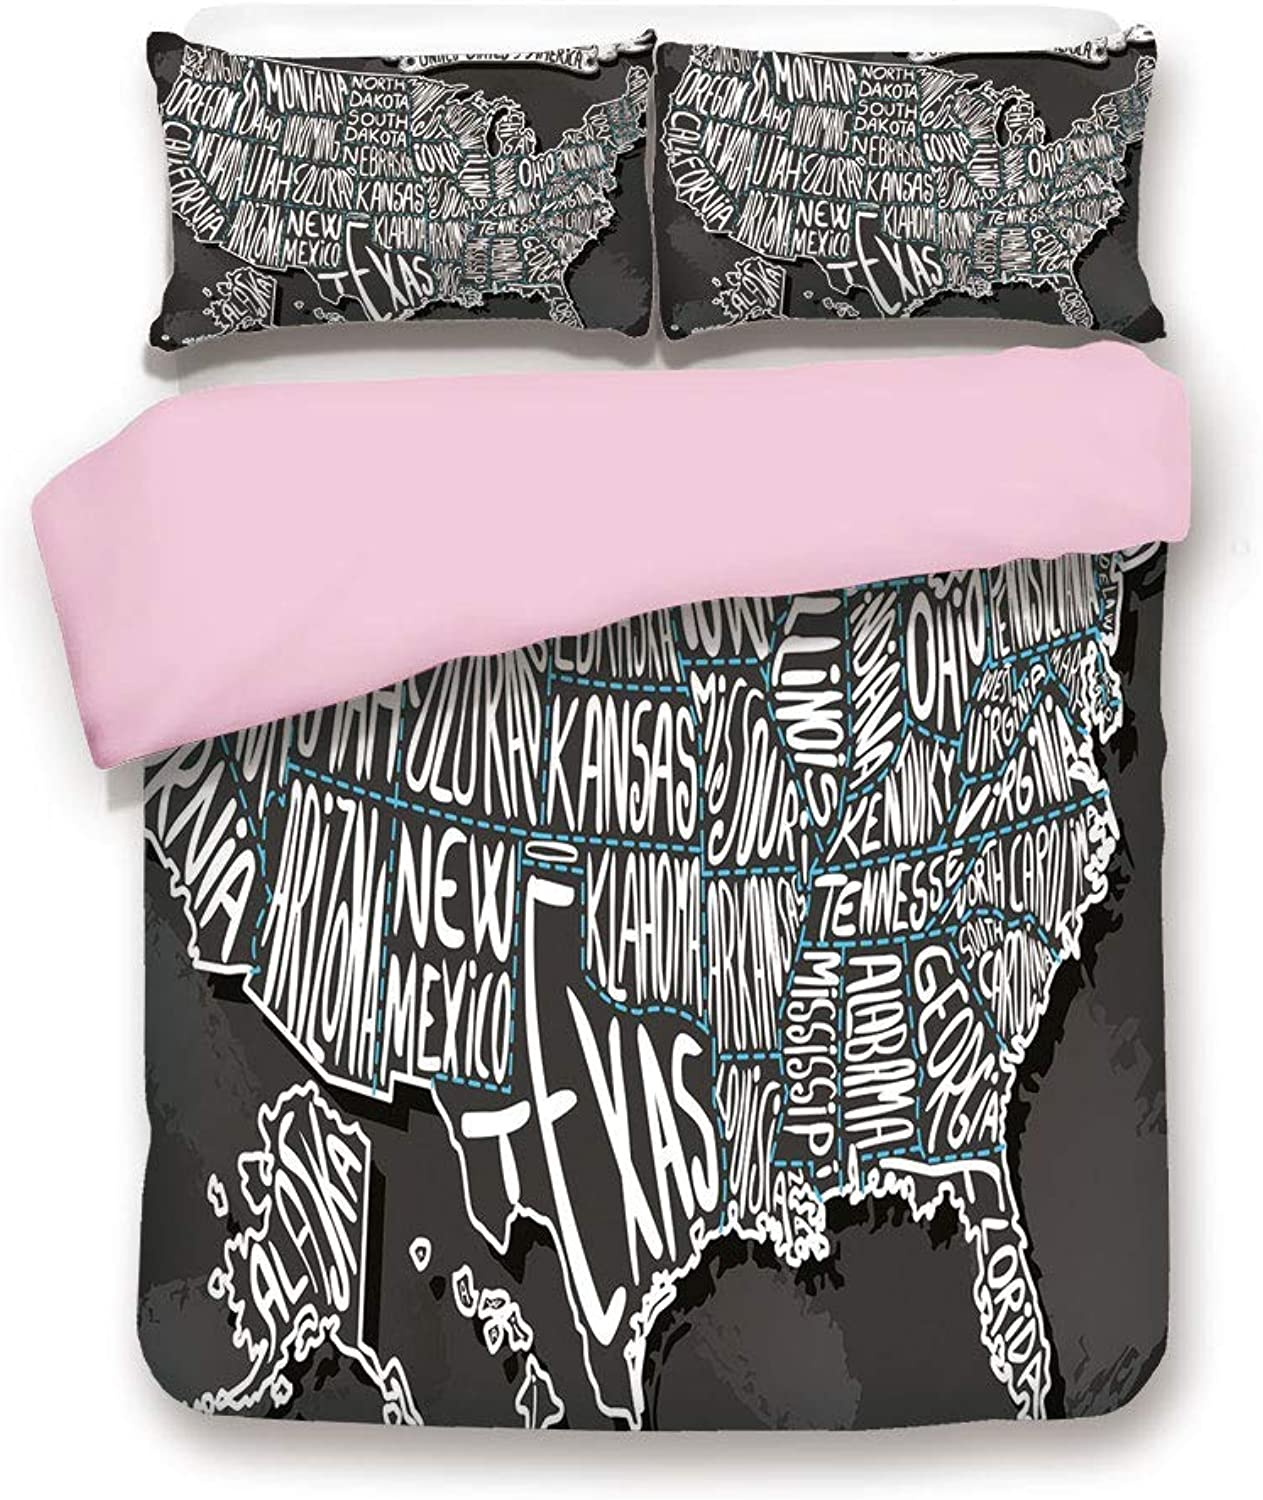 Pink Duvet Cover Set,Full Size,American Towns Calligraphy Style City Geography National Artistic Print,Decorative 3 Piece Bedding Set with 2 Pillow Sham,Best Gift for Girls Women,Charcoal Grey White